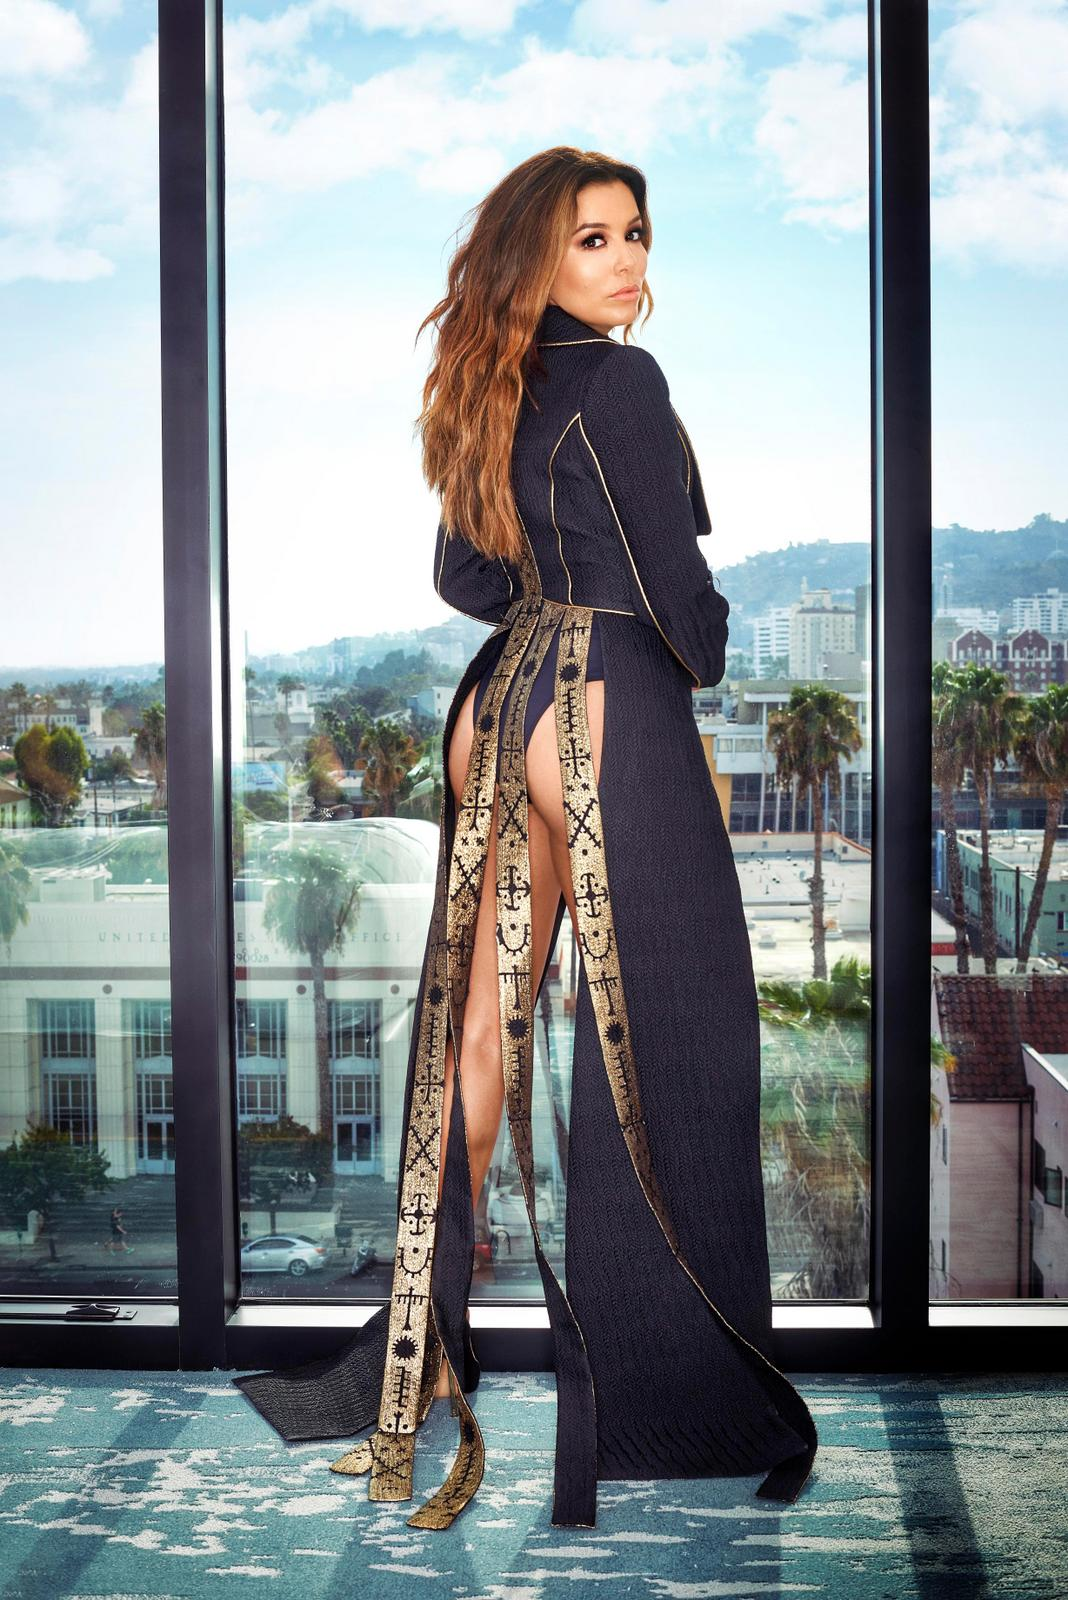 Eva Longoria - Haute Living (September/October 2017)